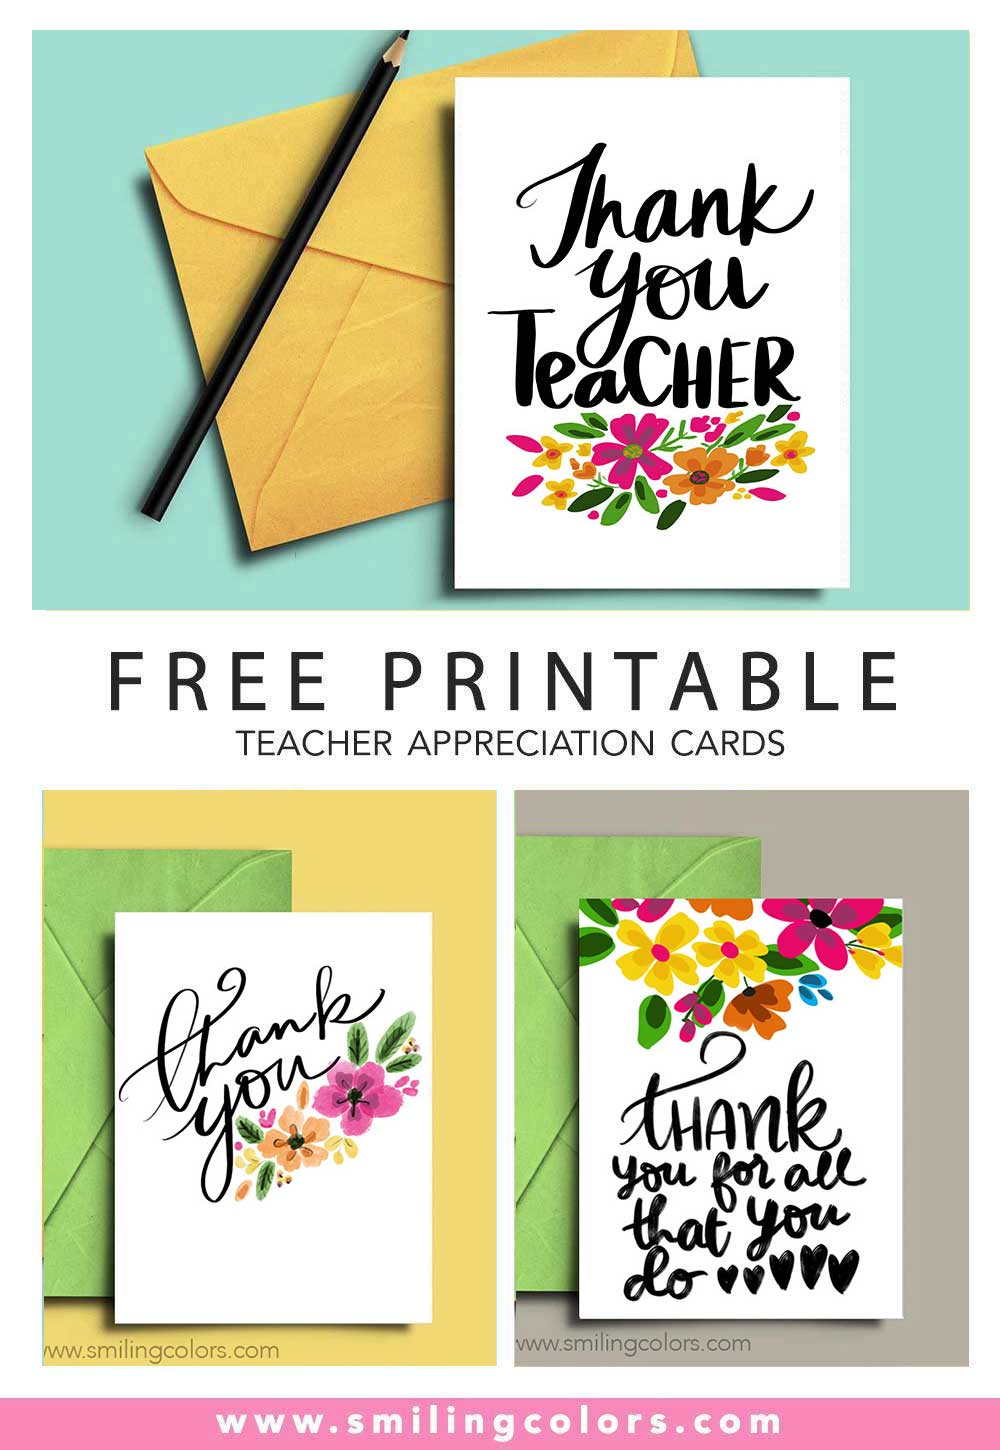 image about Printable Thank You Cards for Kids known as Thank your self trainer: A fastened of Cost-free printable observe playing cards